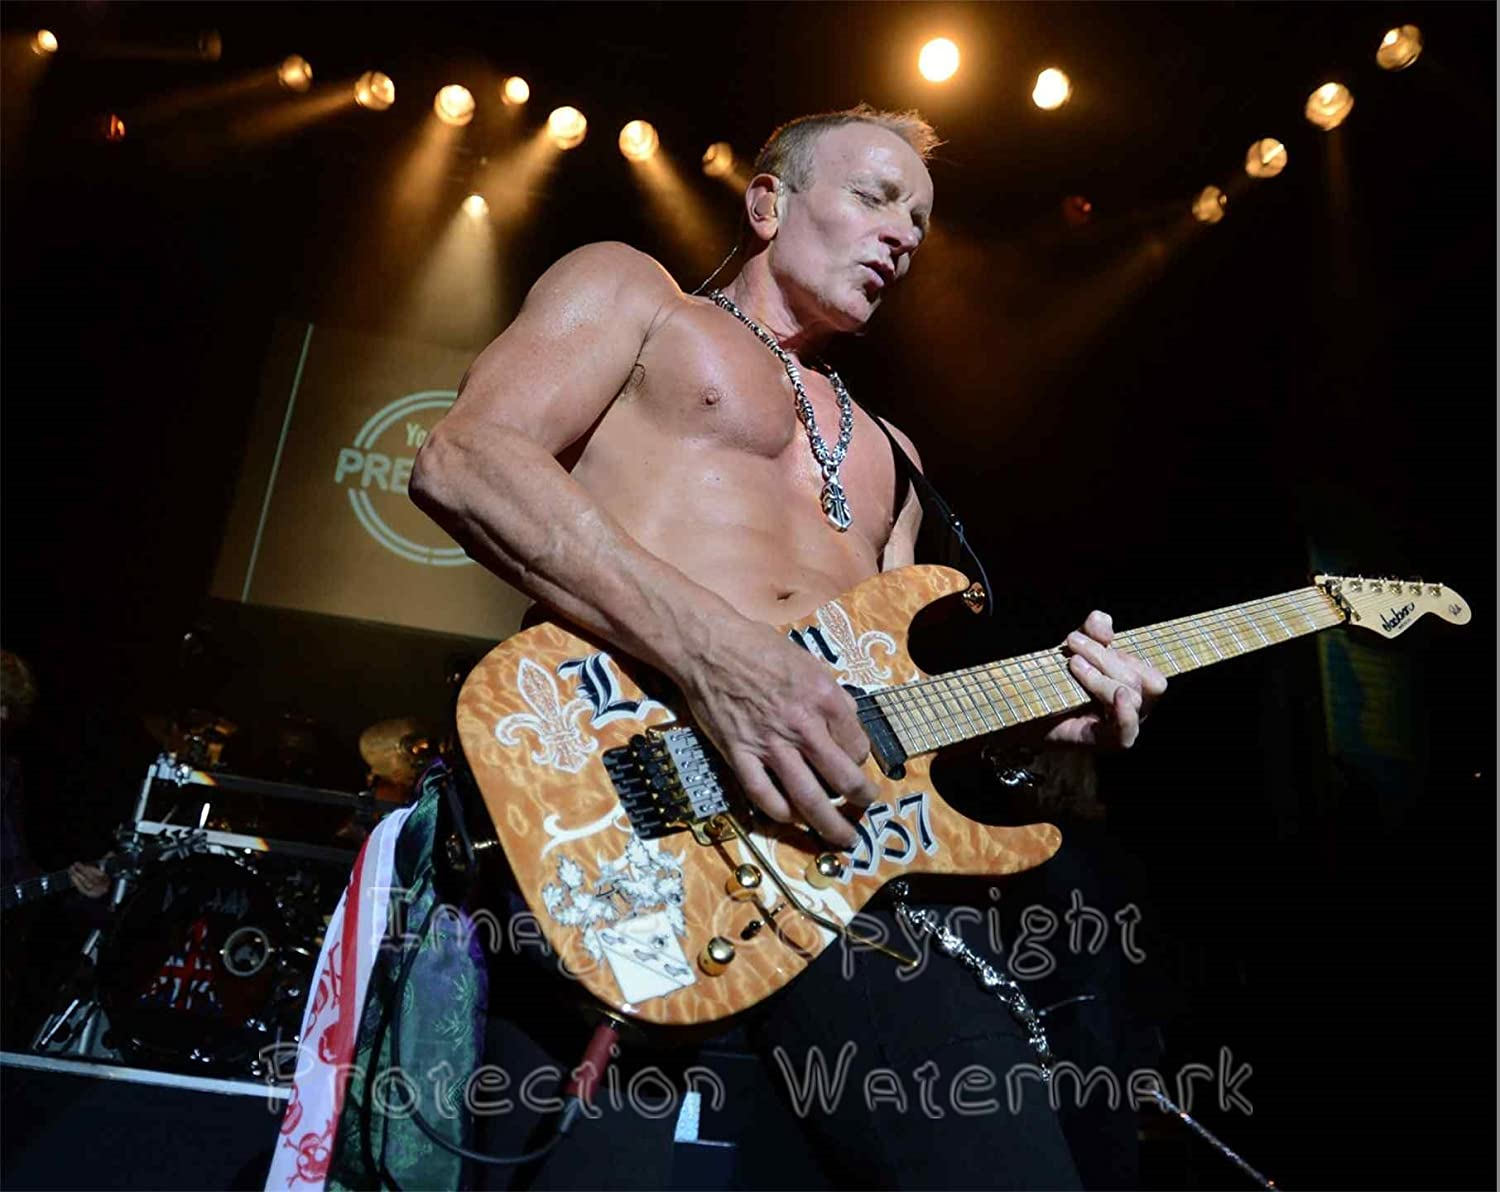 Phil Collen Def Leppard Live Shirtless 8x10 Photo